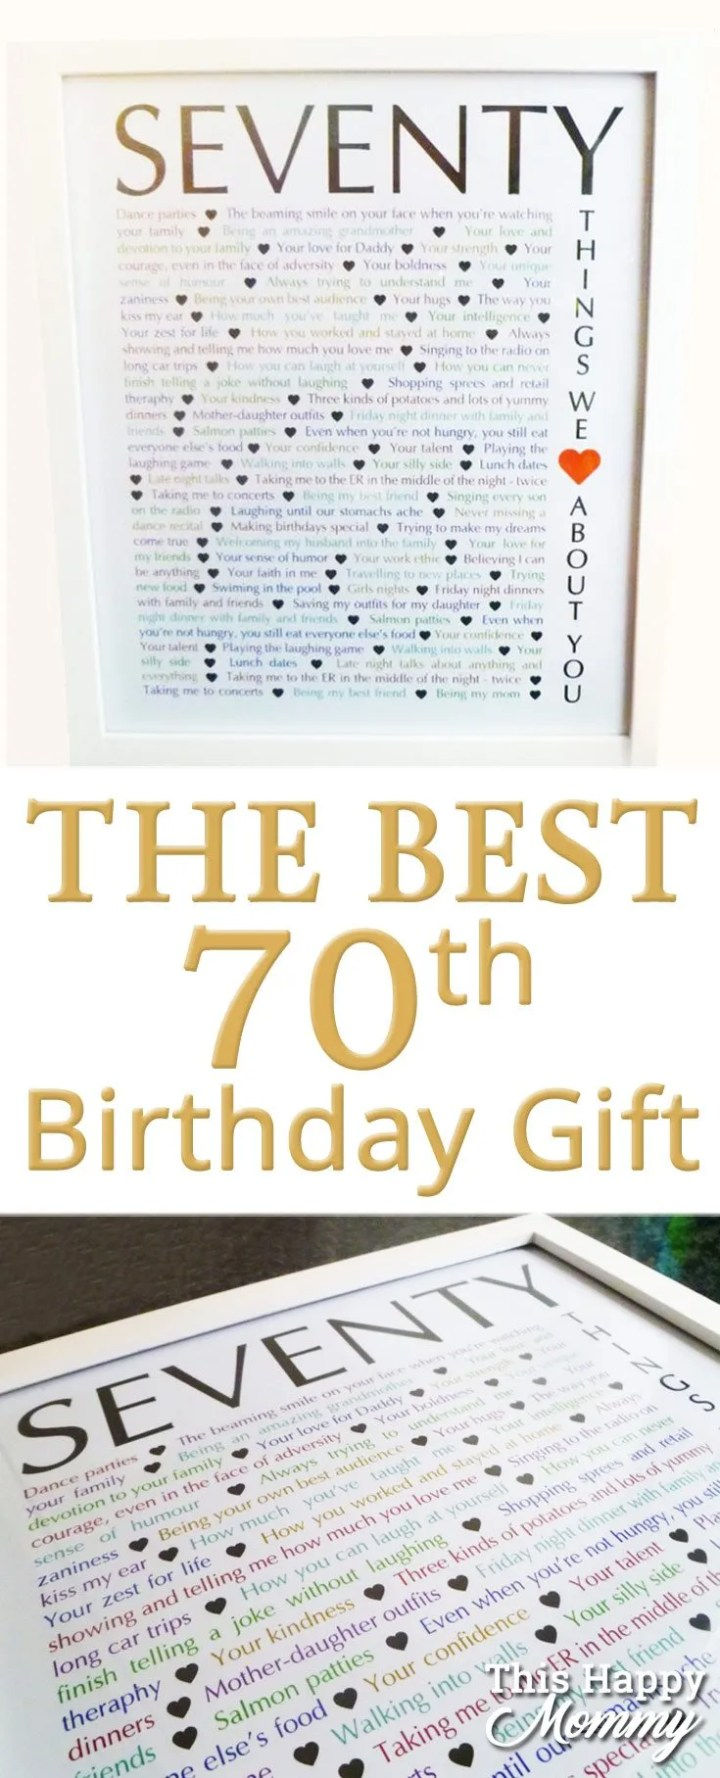 70 Things We Love About You -- The perfect homemade 70th birthday gift. | 70th birthday gift for dad | 70th birthday gift for mom | birthday party gift for adults | the best 70th birthday gift #70birthday #birthdaygift | thishappymommy.com